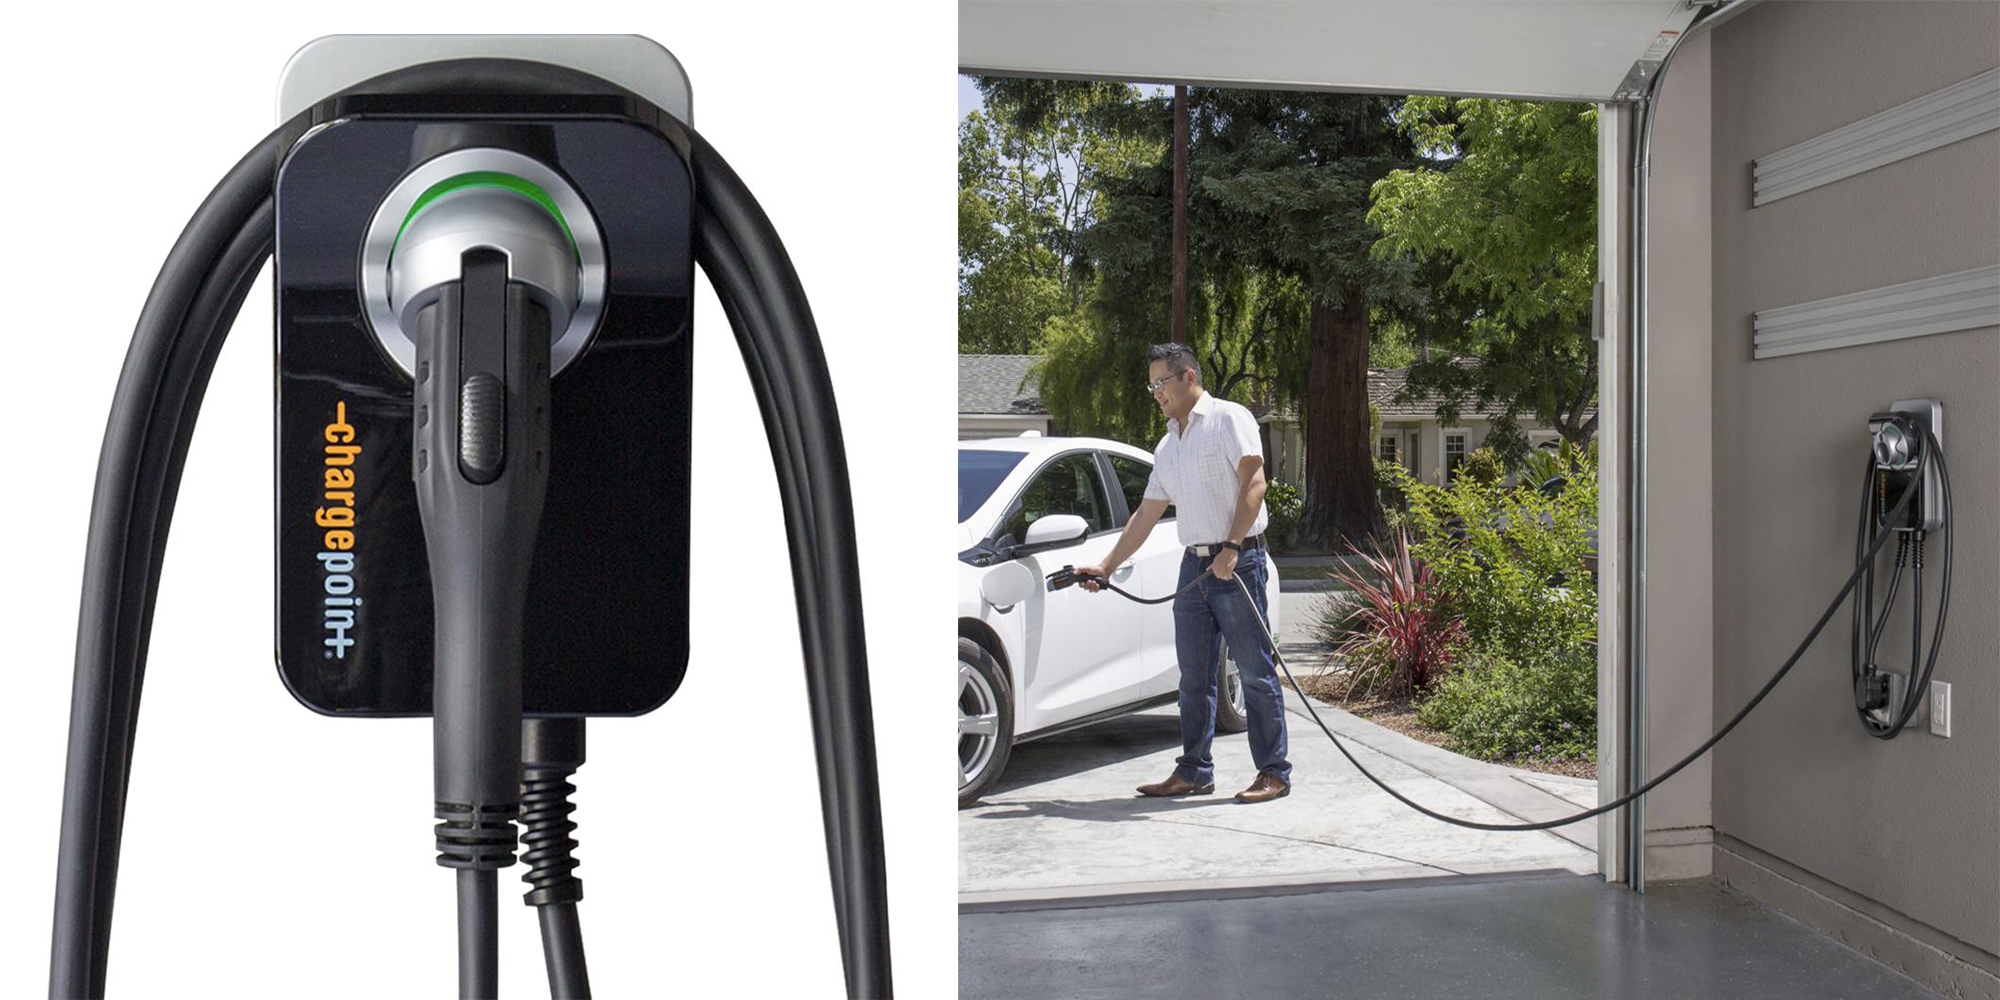 Ev Charger Black Friday >> Black Friday Deals For Electric Car Charging Stations And Ev